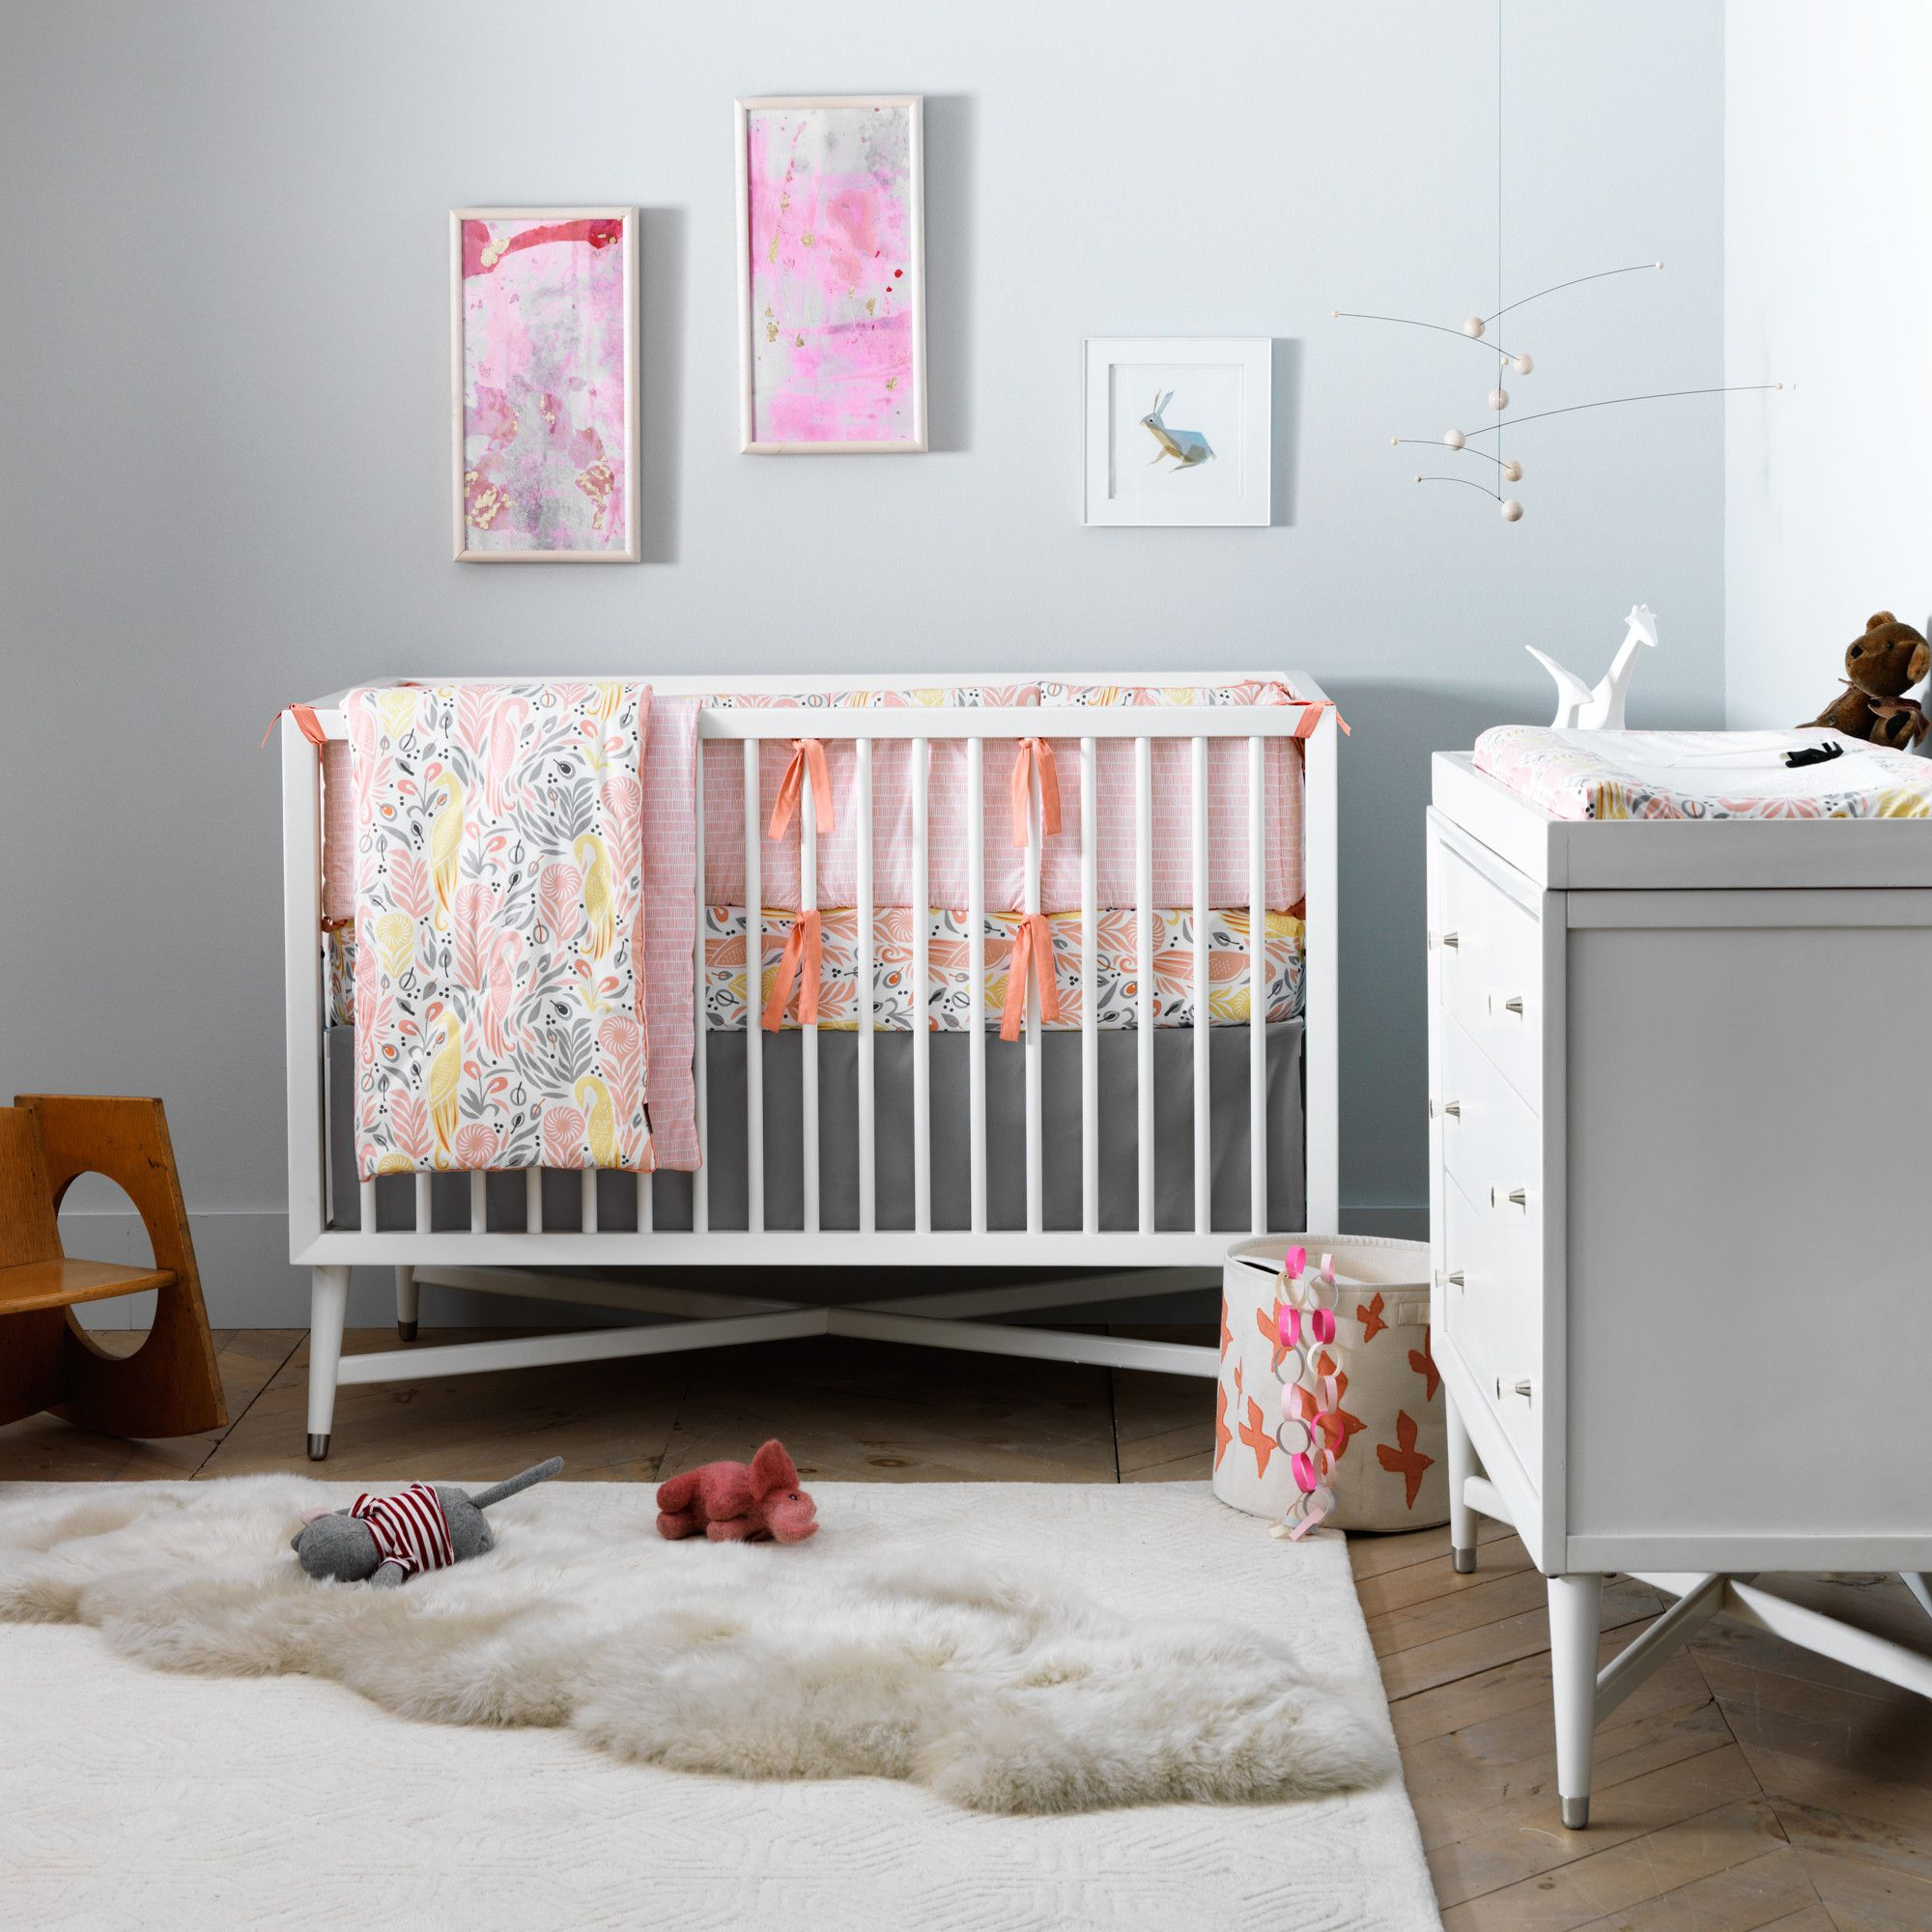 designs sheet explore images sets truimg sweet jojo s coral product toysrus bedding pin cribs fitted com and more crib